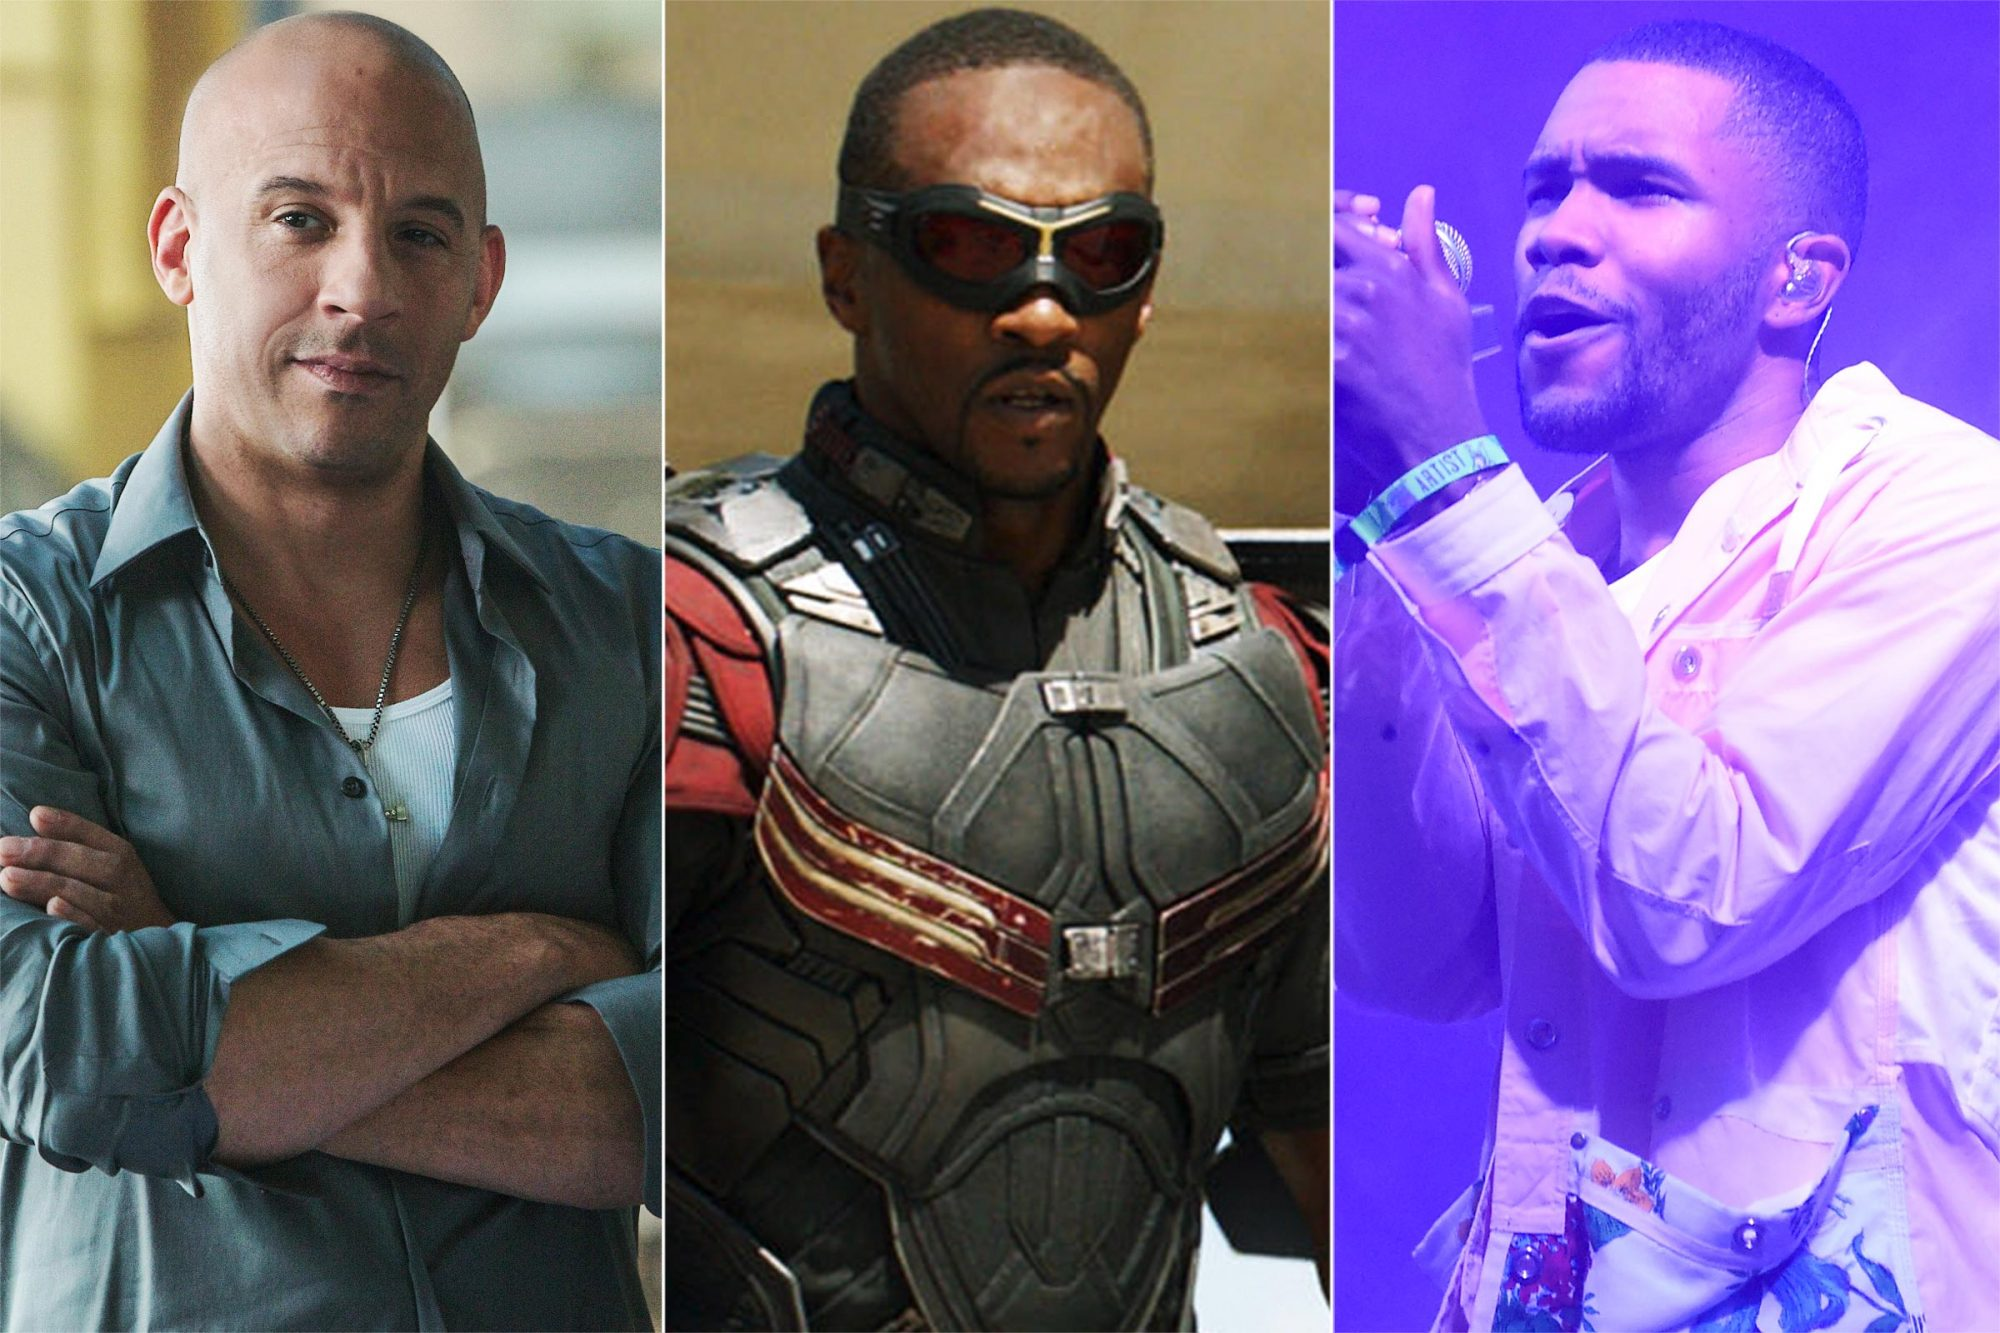 Vin Diesel in Fast & Furious Anthony Mackie as Falcon and Frank Ocean